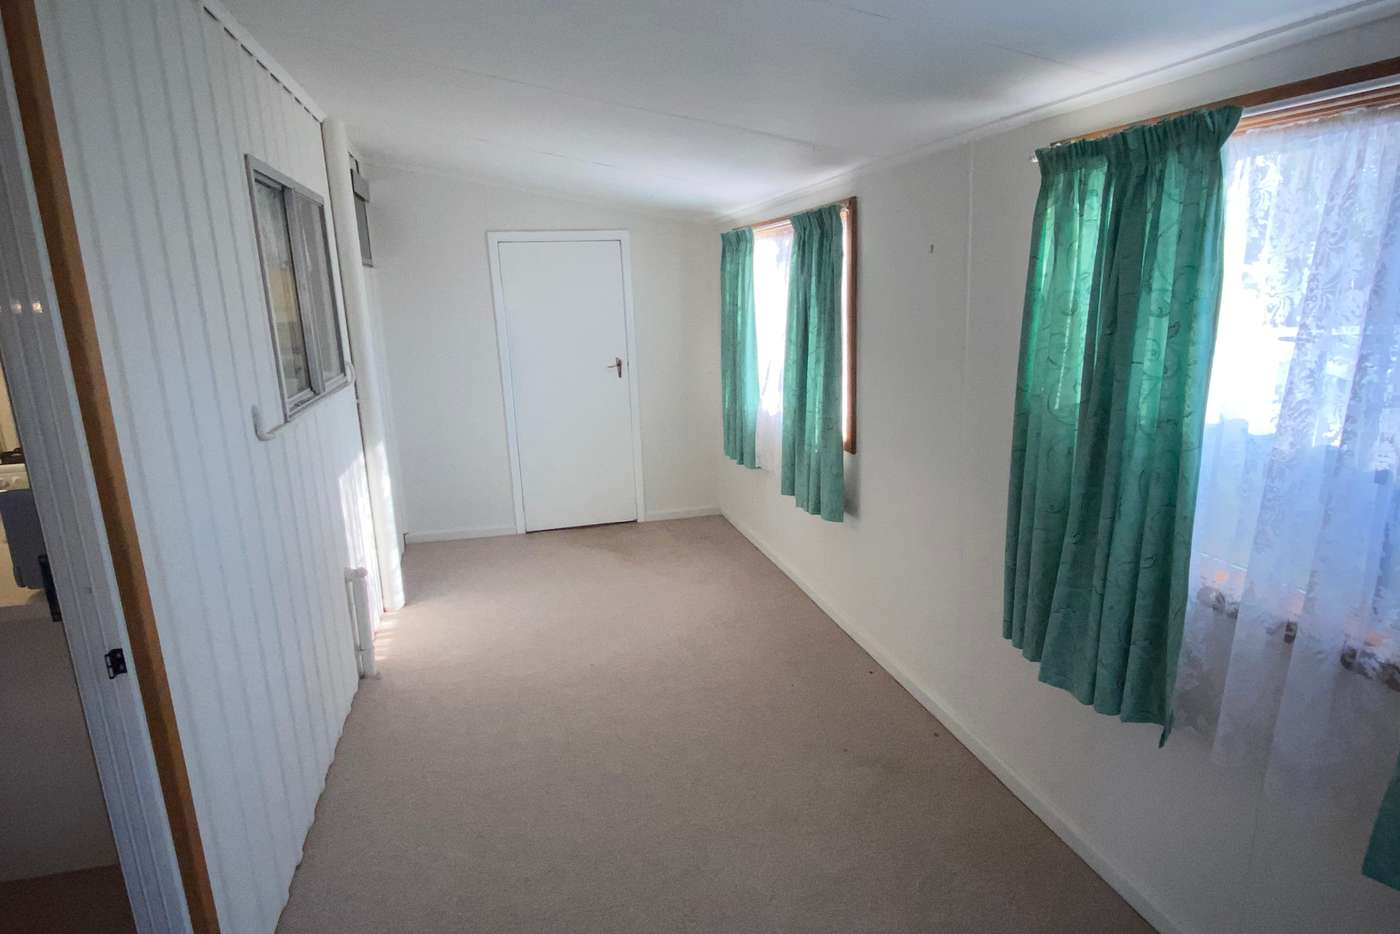 Sixth view of Homely house listing, 46 Forrest St, Beverley WA 6304